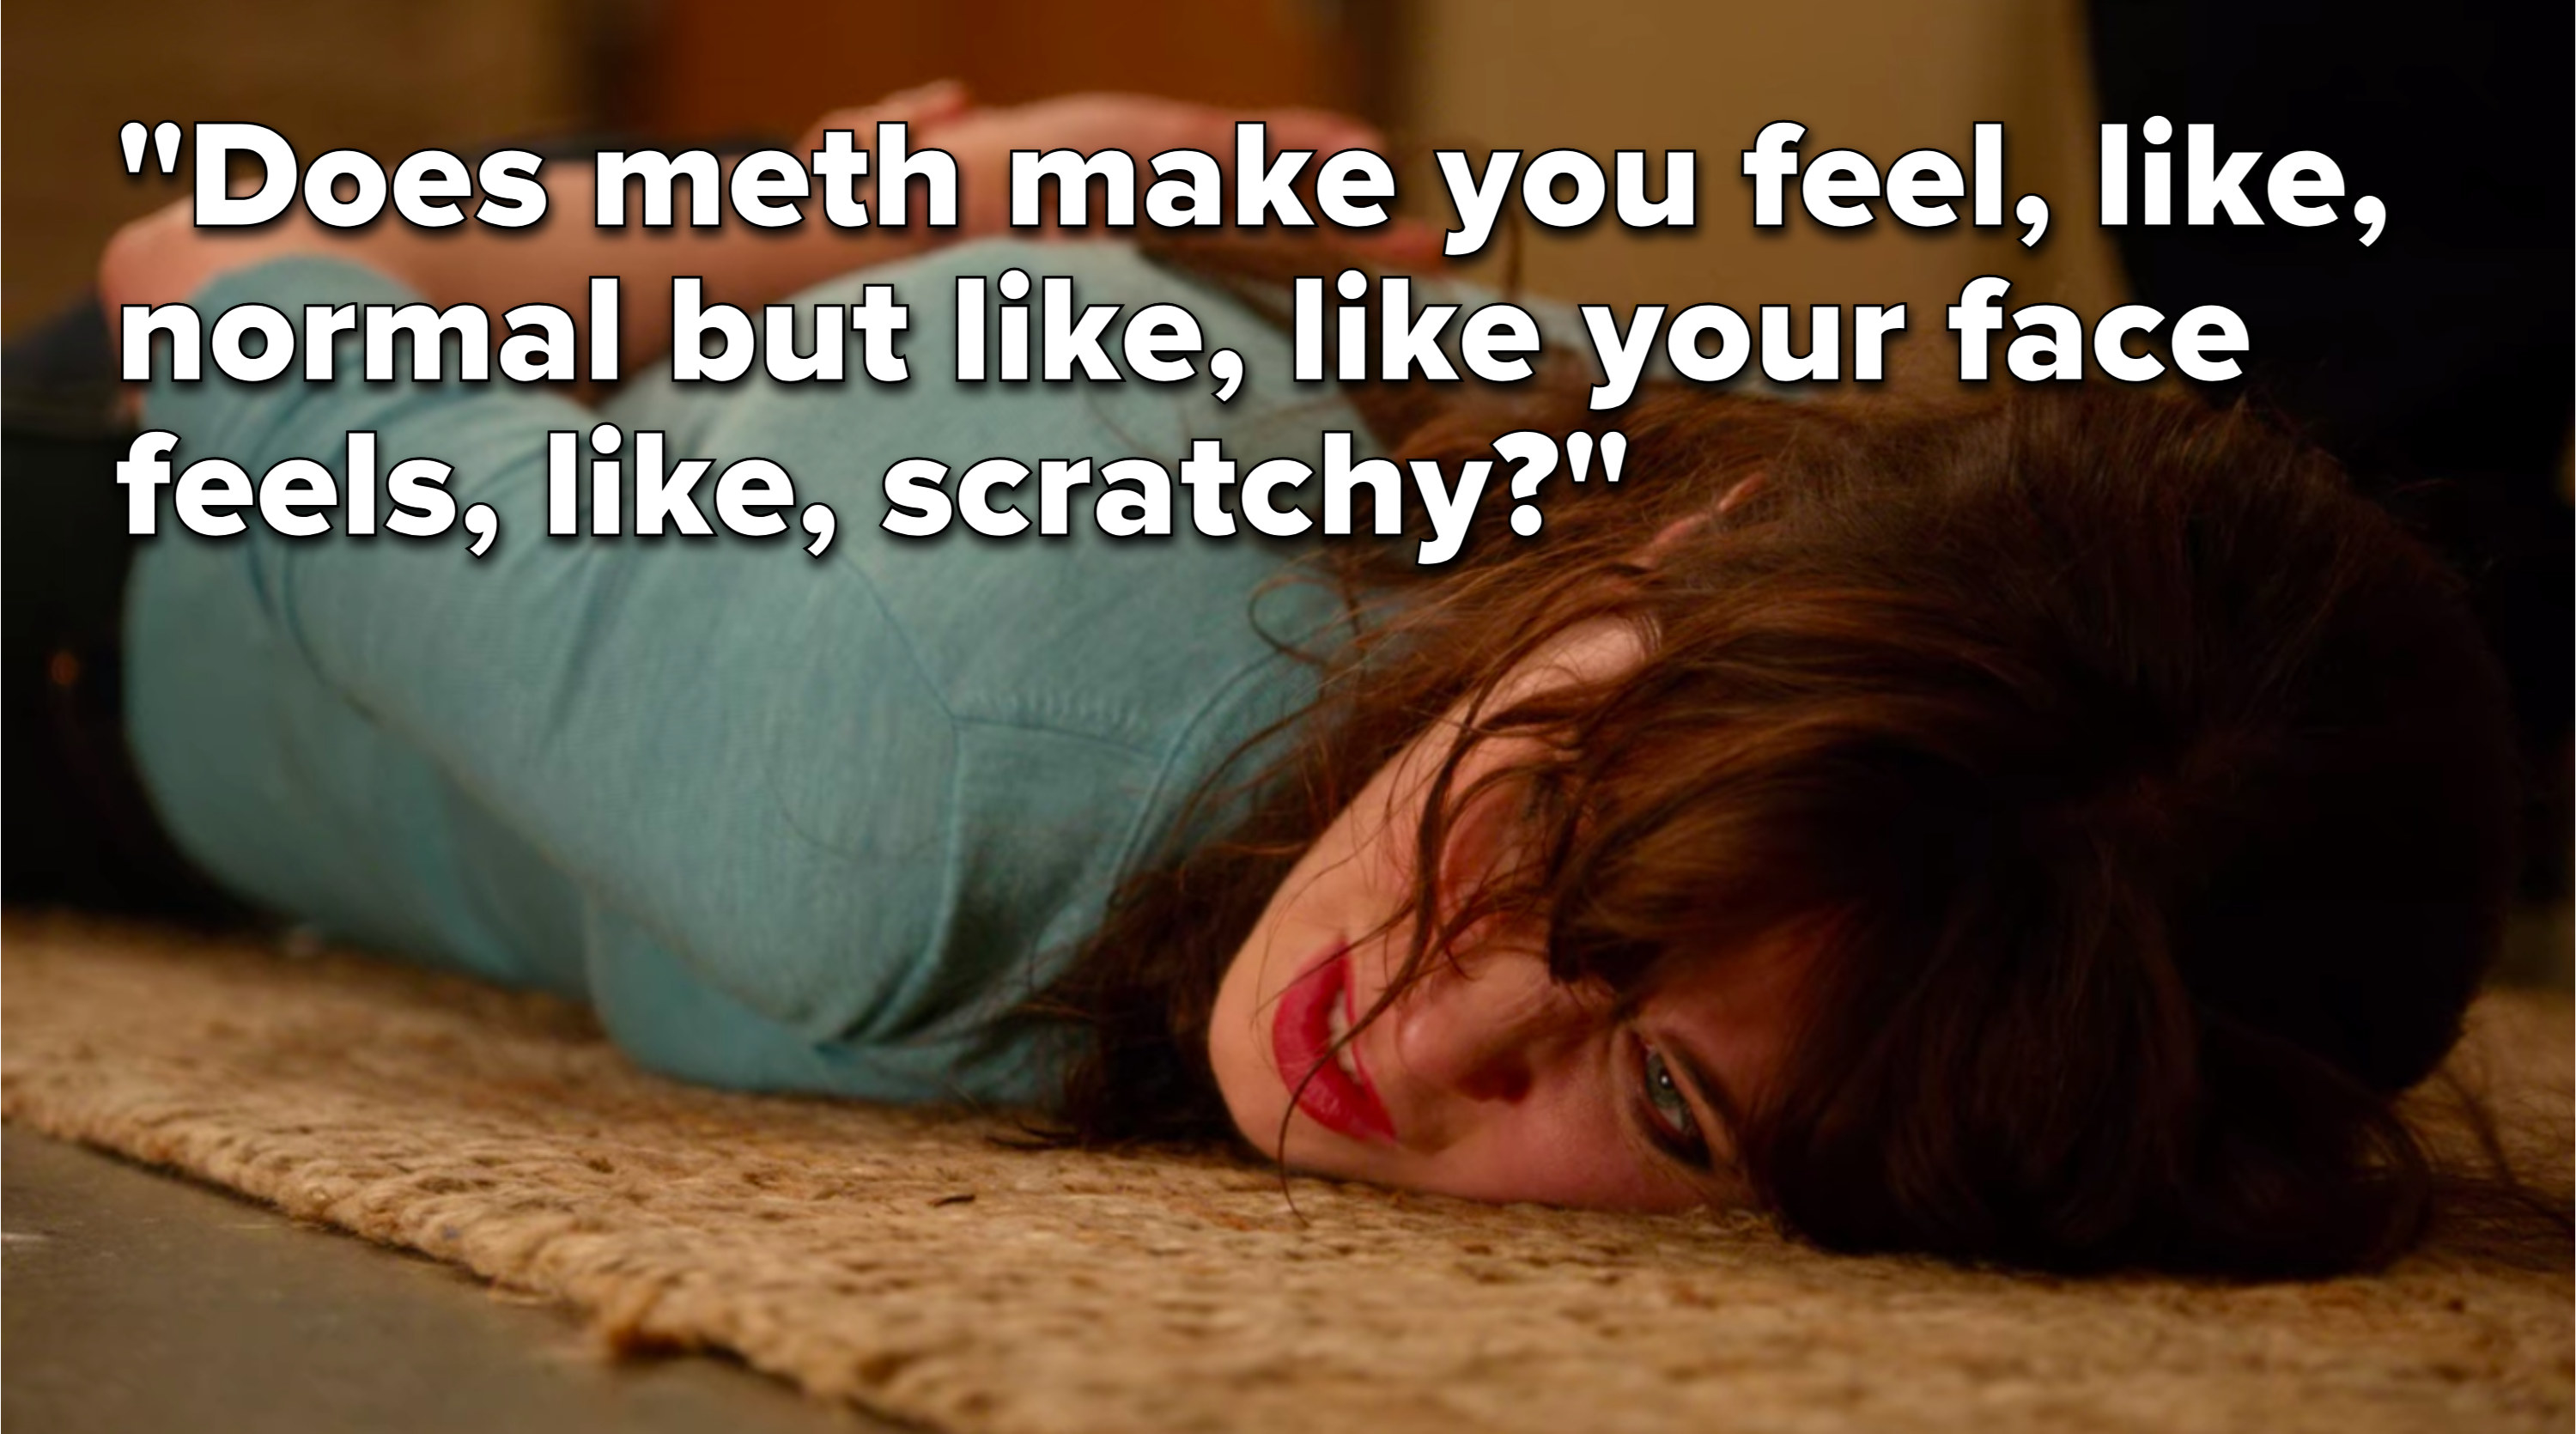 """Jess says, """"Does meth make you feel, like, normal, but like, like, your face feels, like, scratchy"""""""